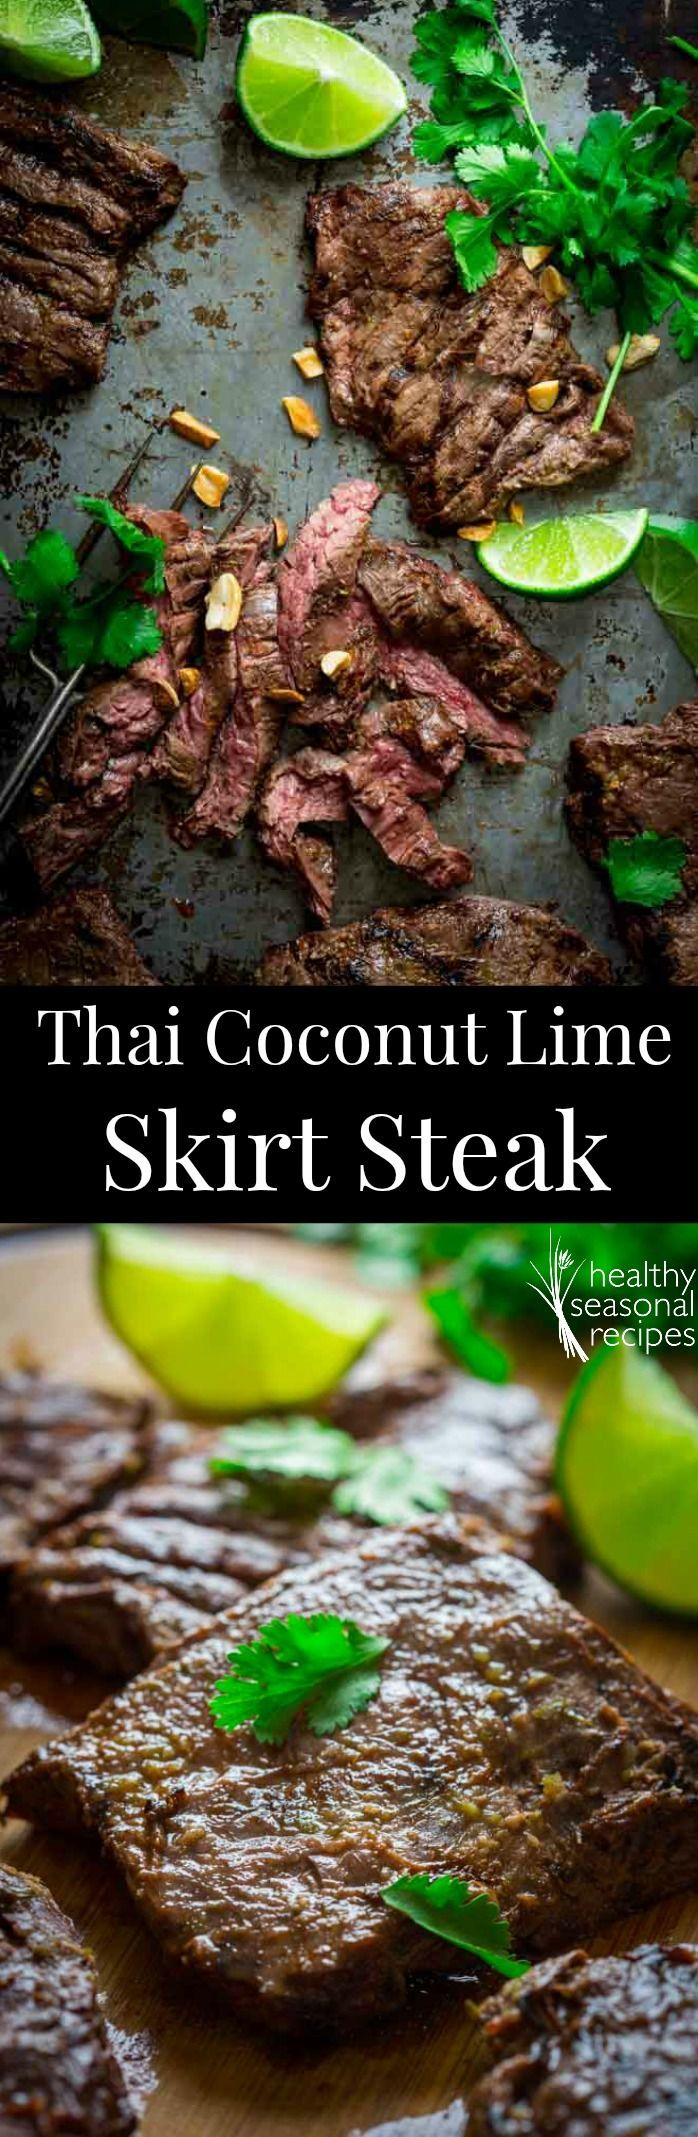 Grilled Thai Coconut Lime Skirt Steak - Healthy Seasonal Recipes #dinner #steak #healthy